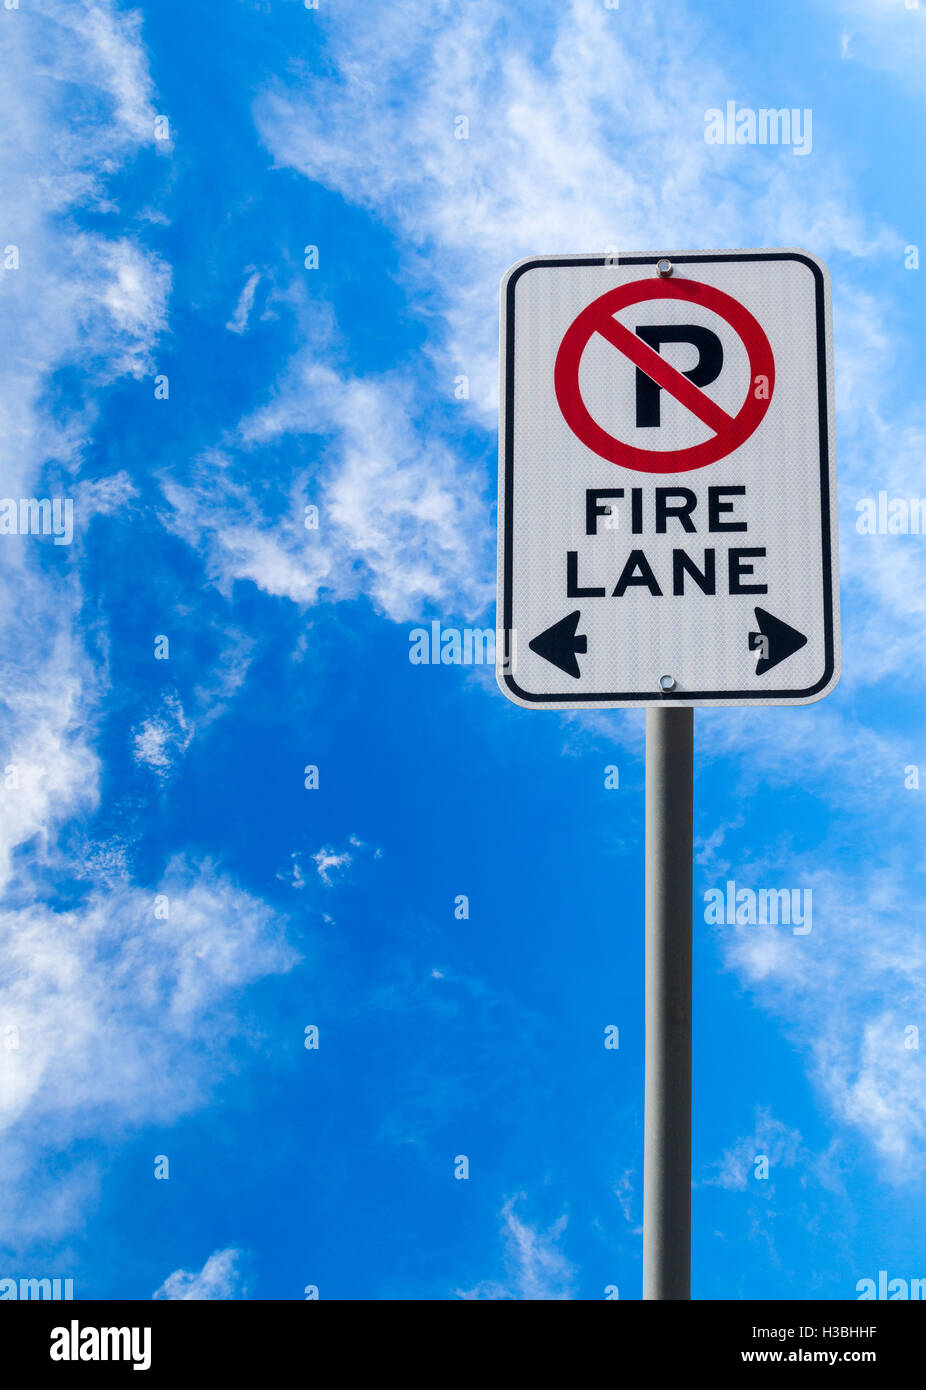 A Fire Lane No Parking sign against a blue cloudy sky with copy space. Vertical orientation. - Stock Image